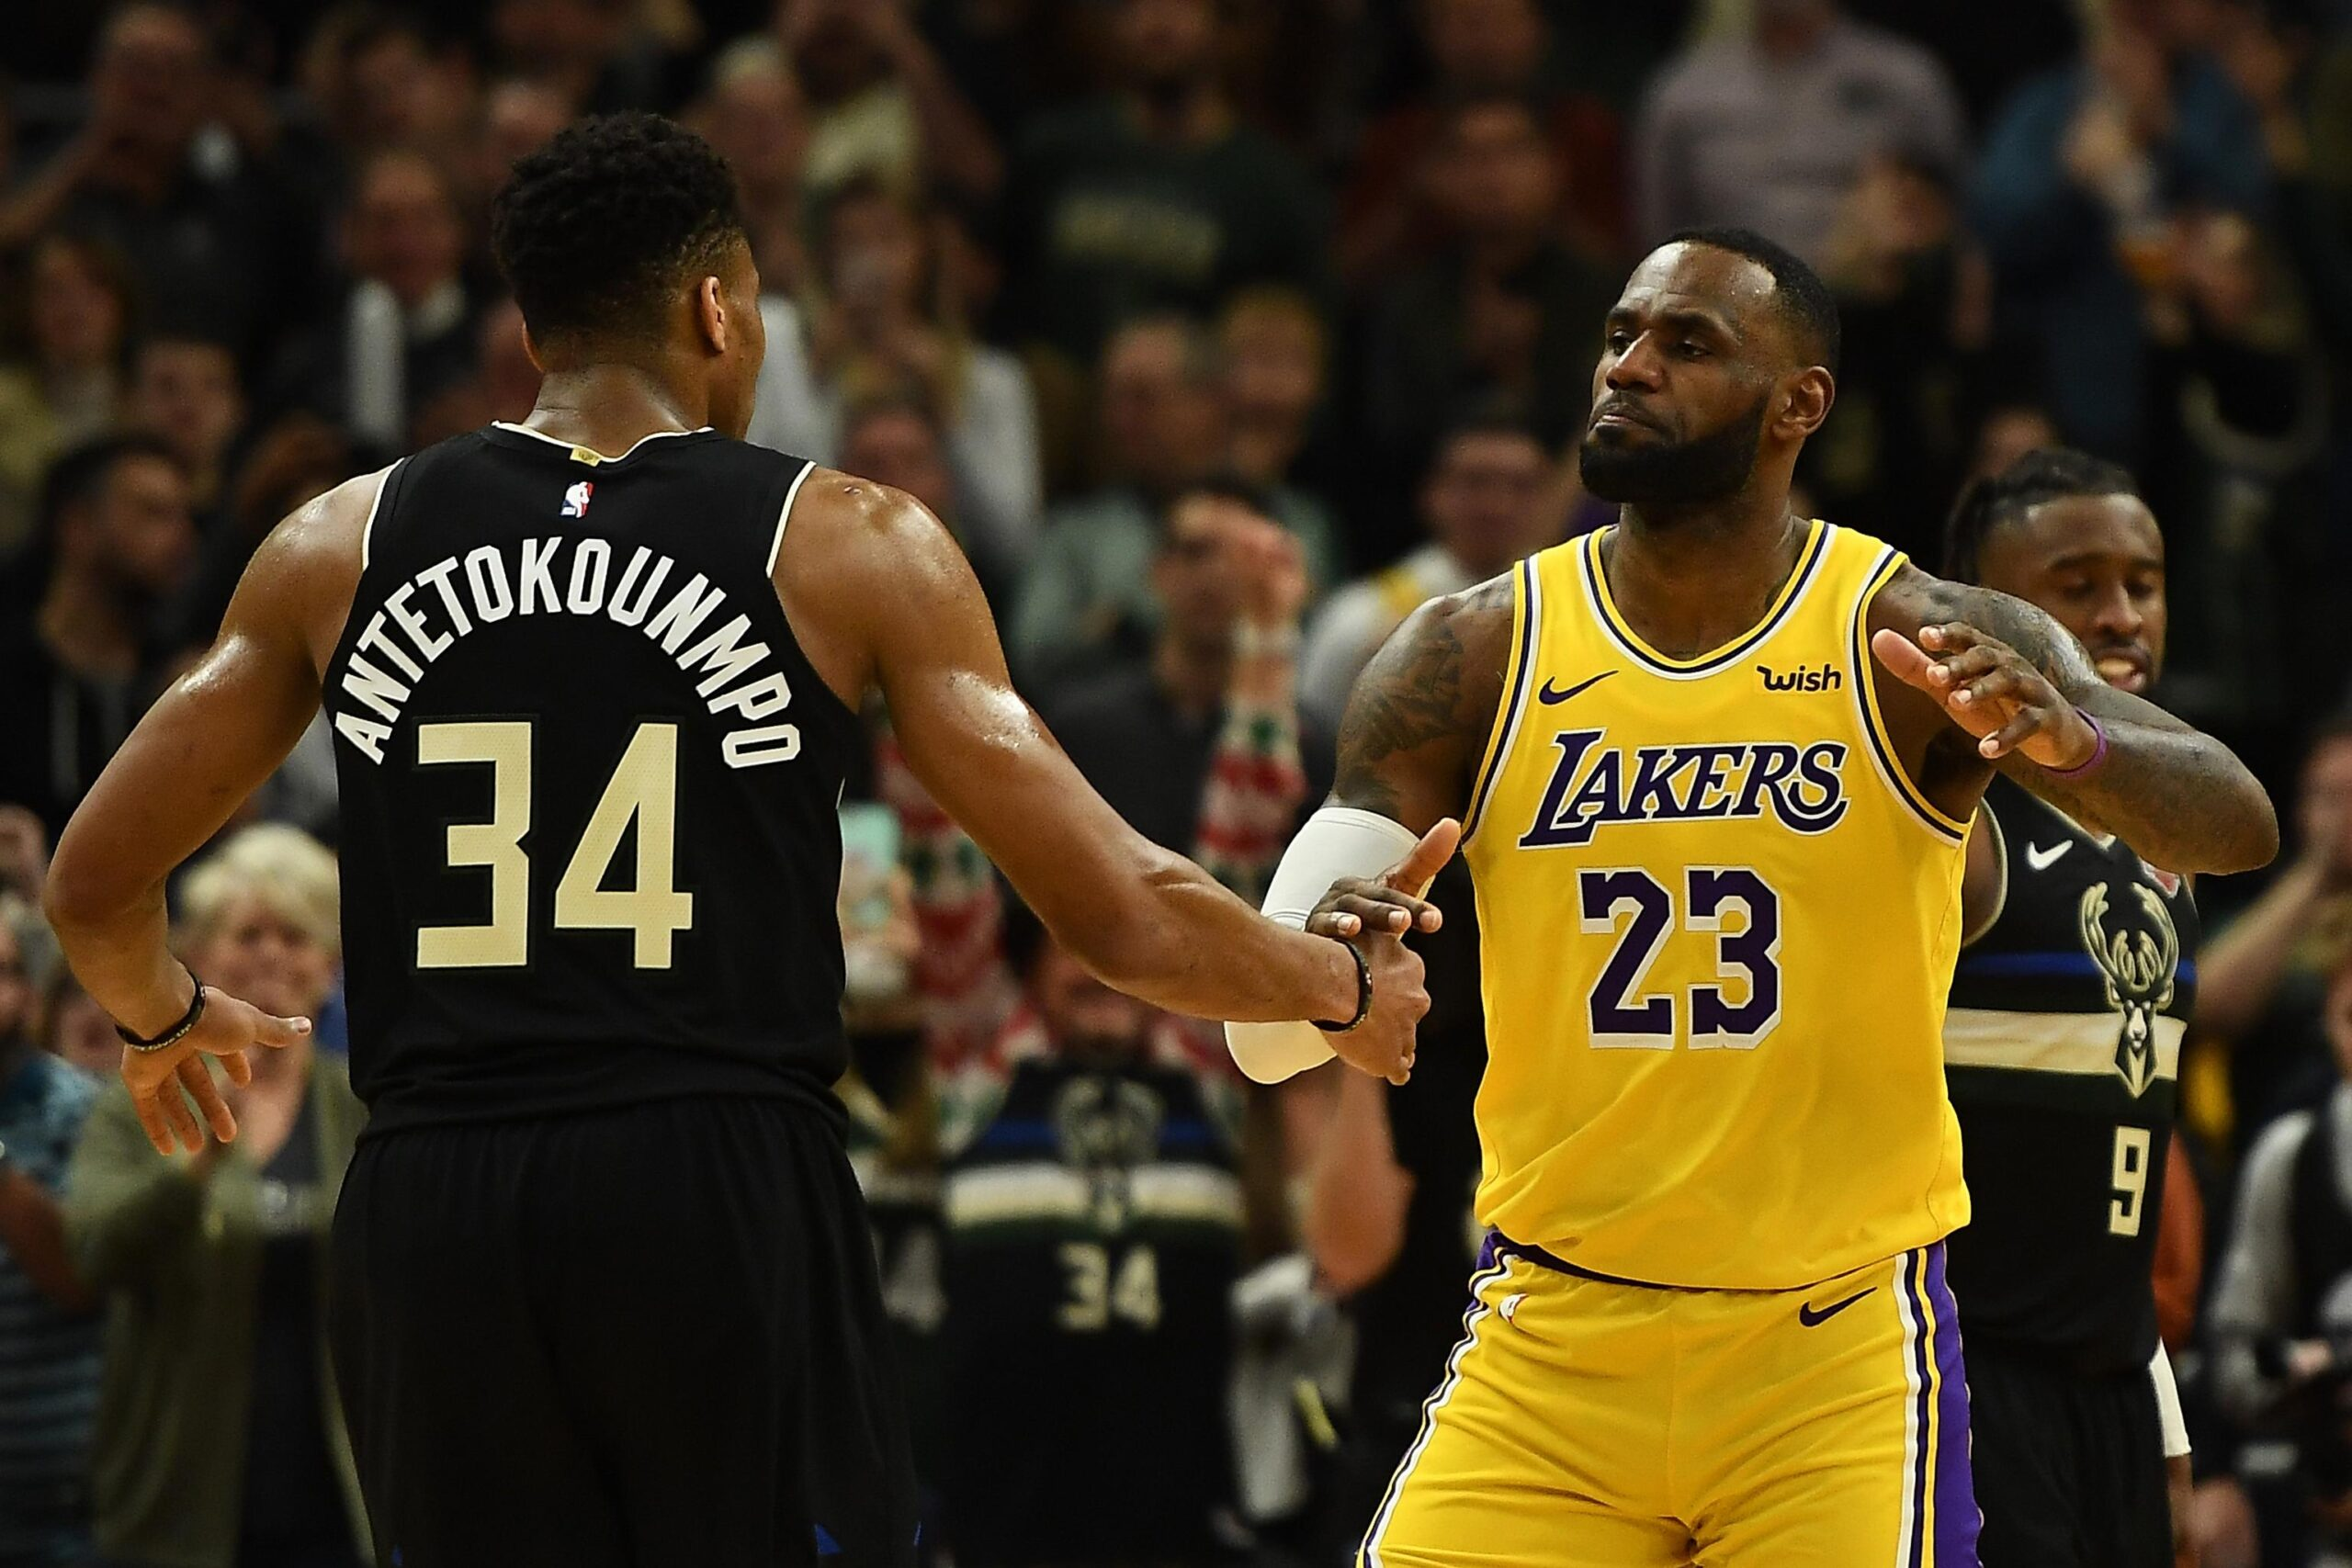 Mike Bets #79 & NBA Power Rankings